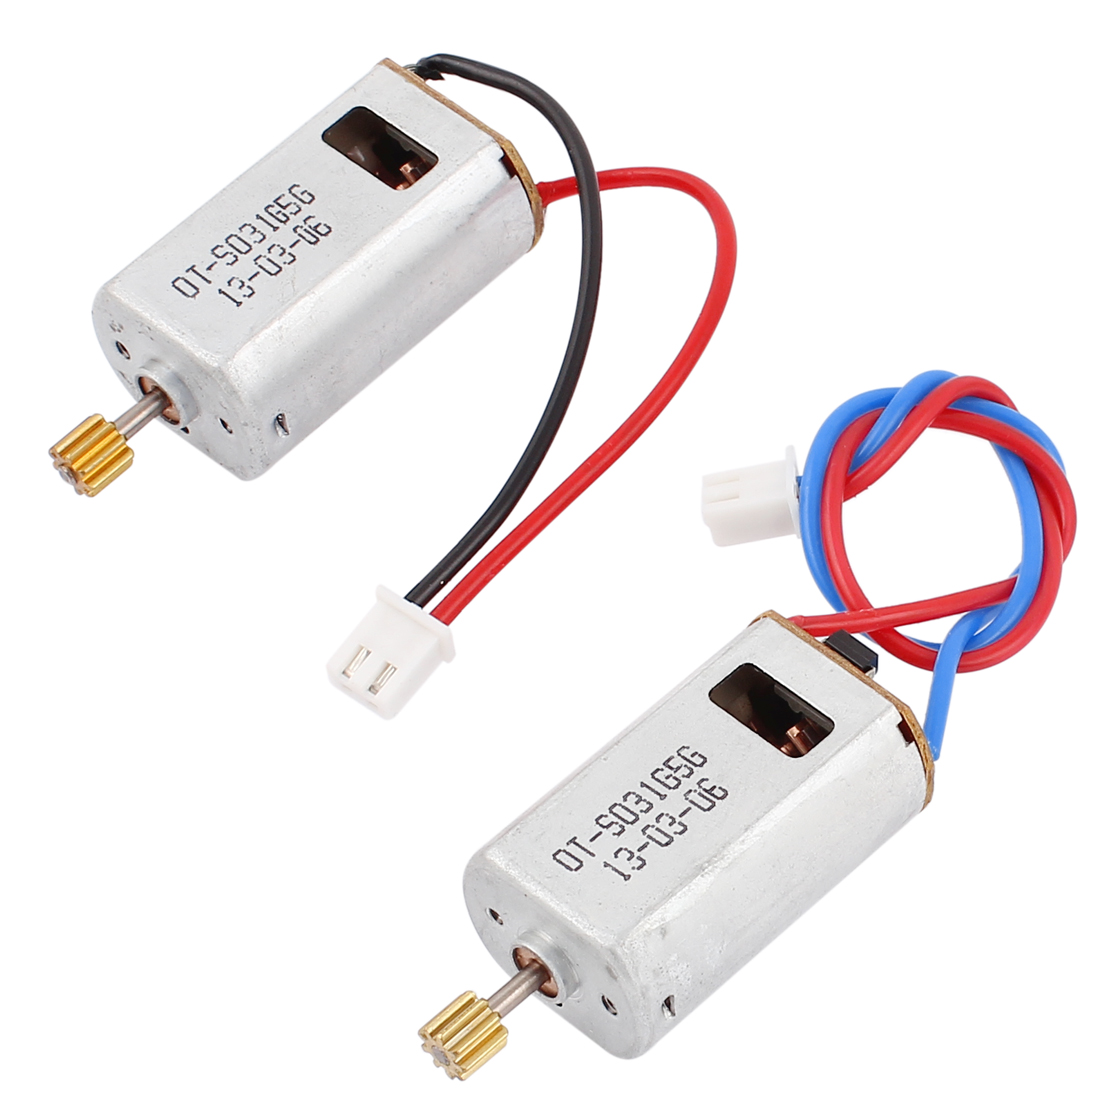 2 Pcs DC 7.4V 74000RPM Electric Toys Motor Replacement for Syma SO31G RC Airplane